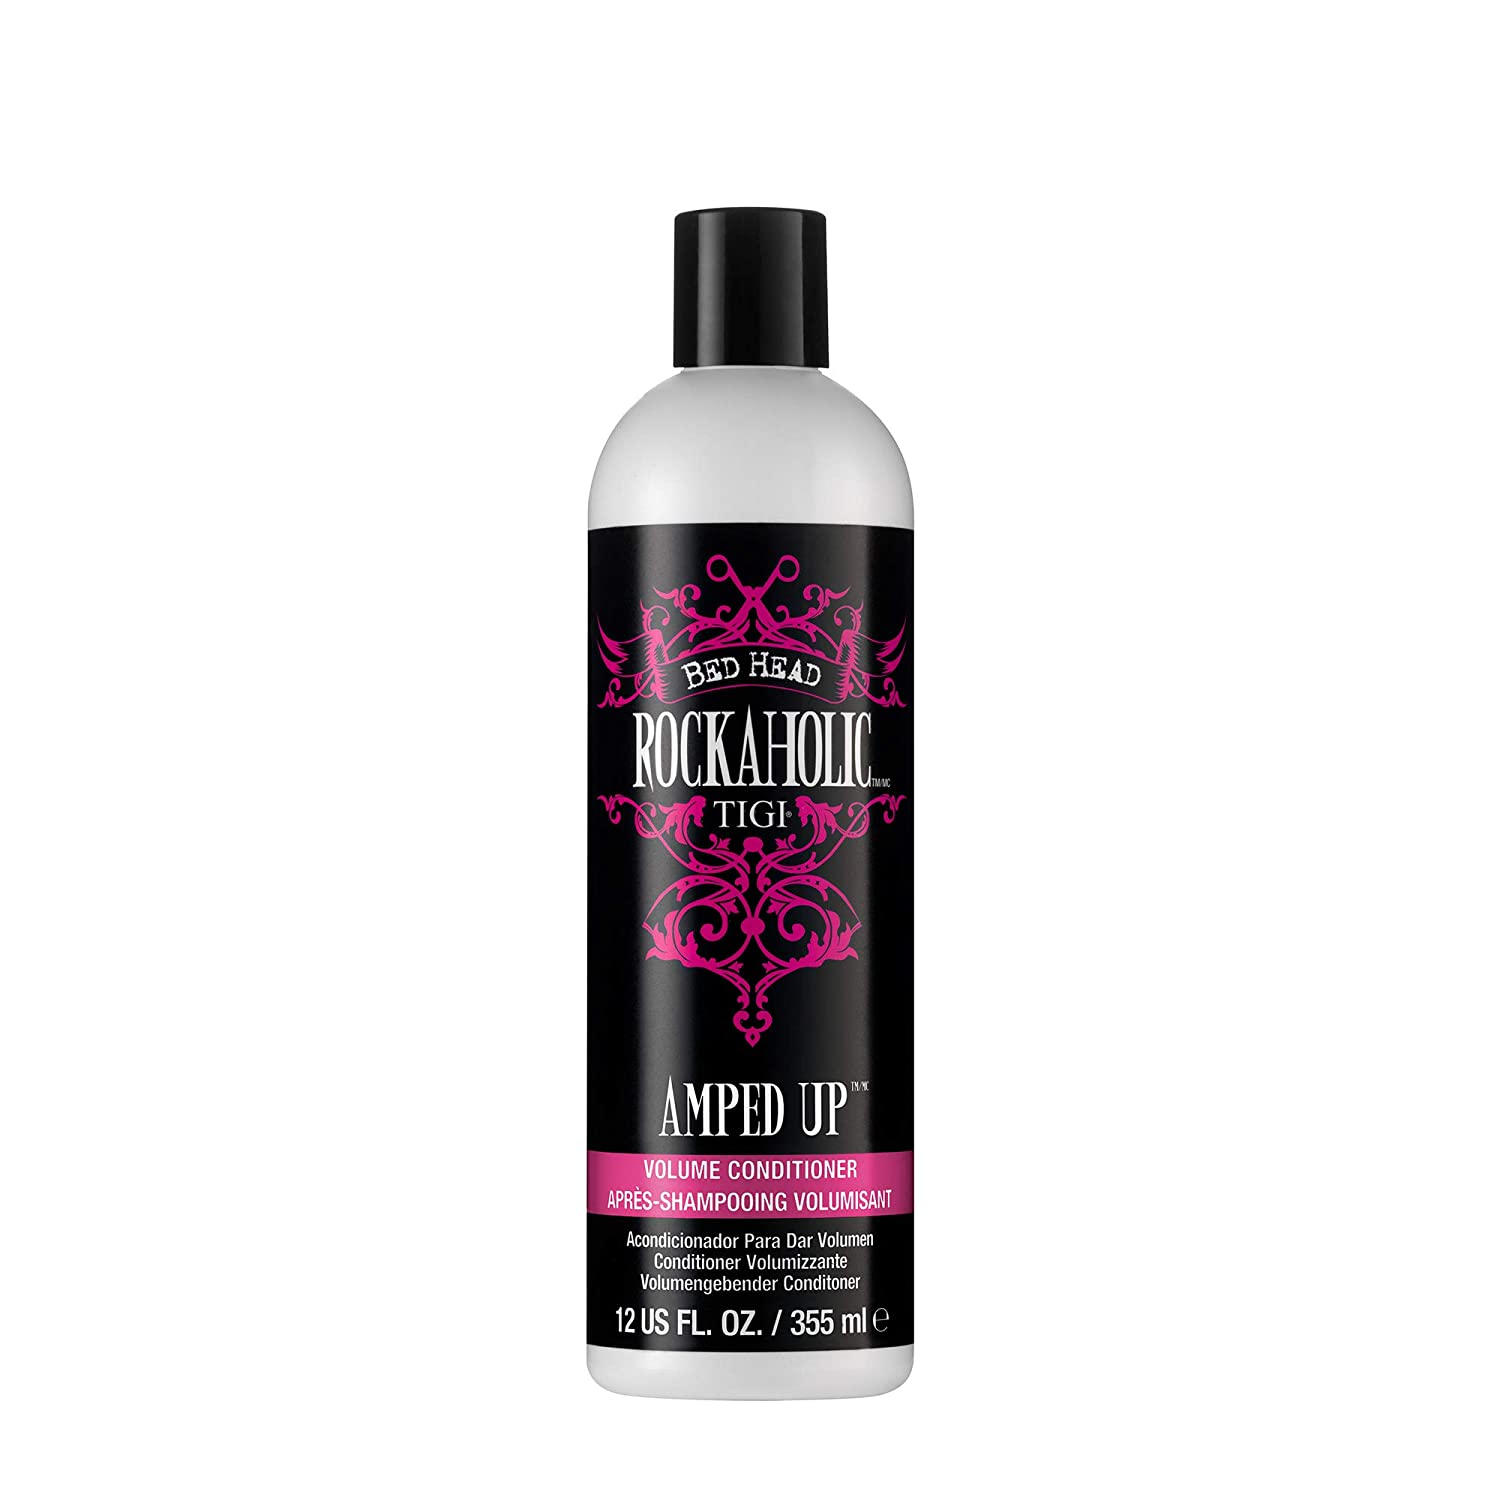 Bed Head Rockaholic Volume Conditioner Amped Up 12 Ounce